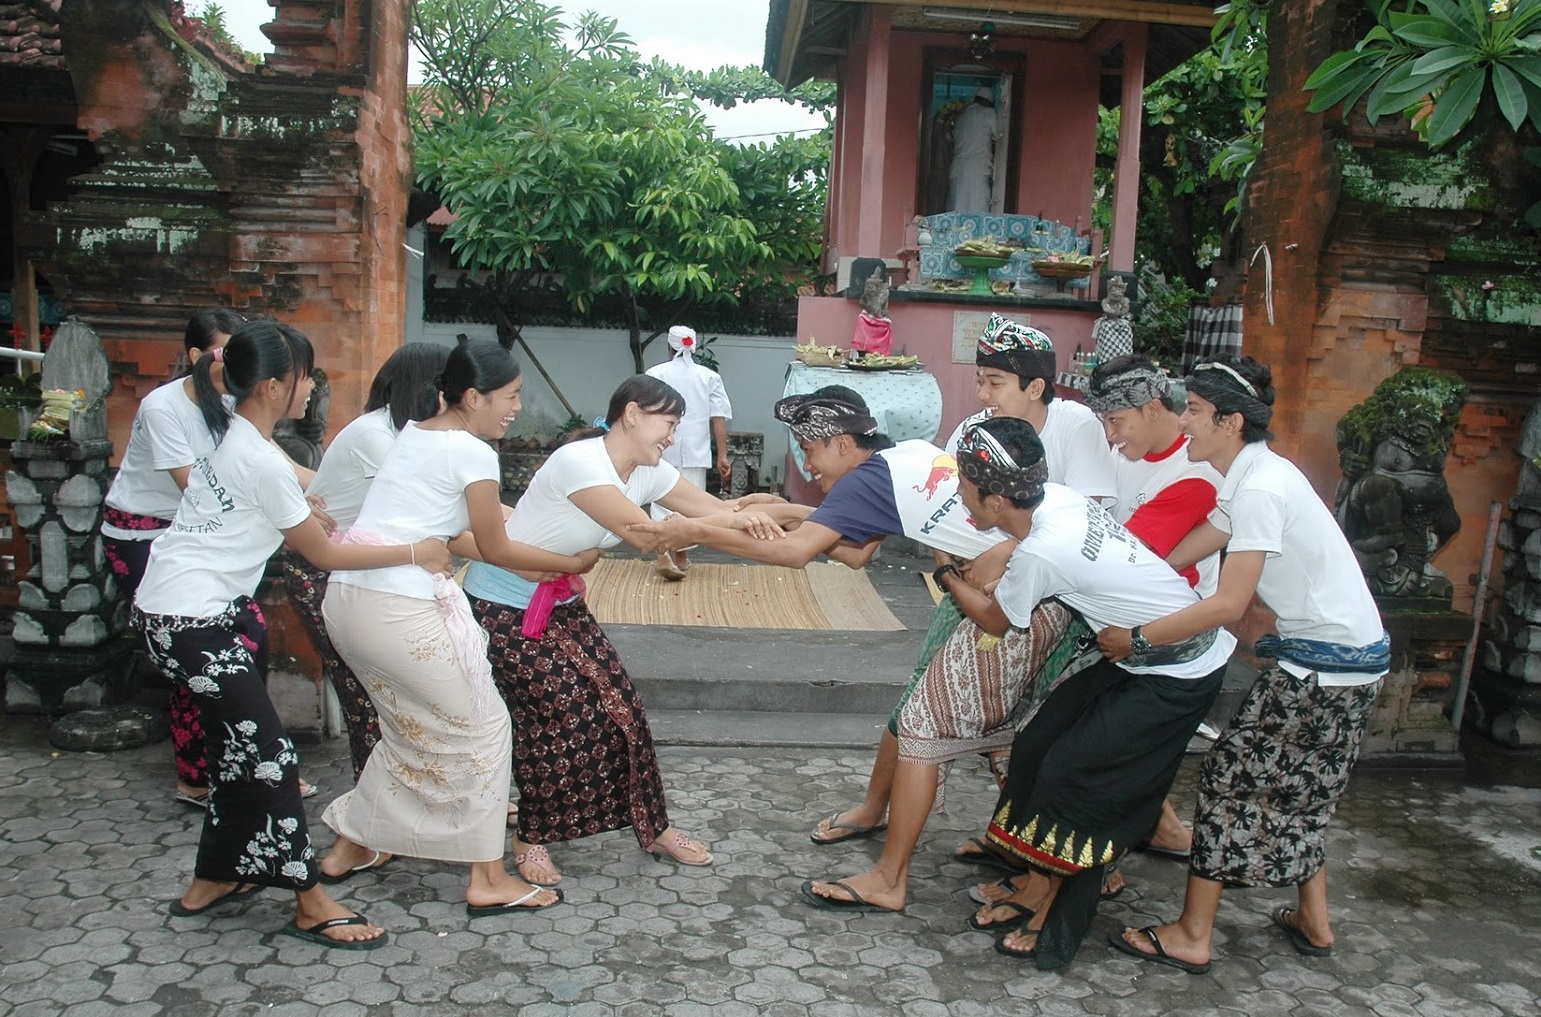 bali kissing ritual in sesetan village